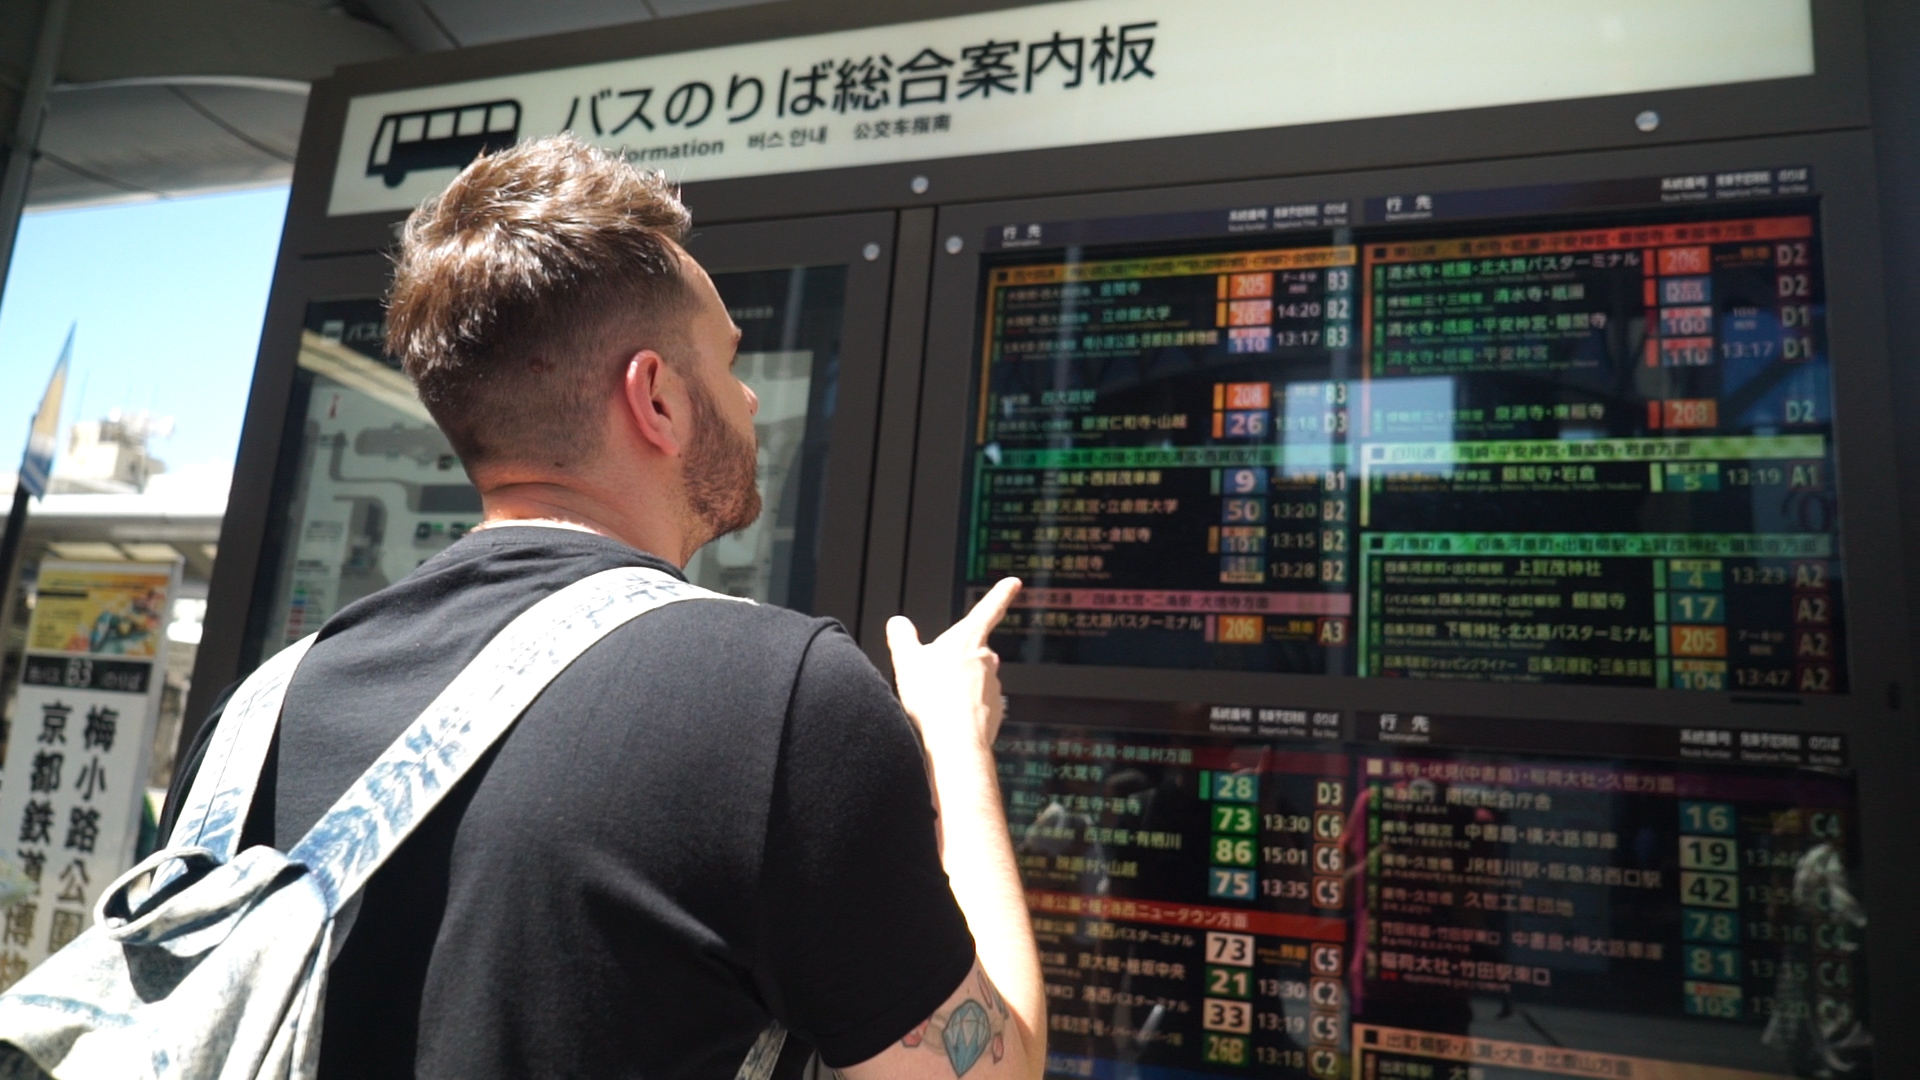 Dan checking the bus timetable in Kyoto